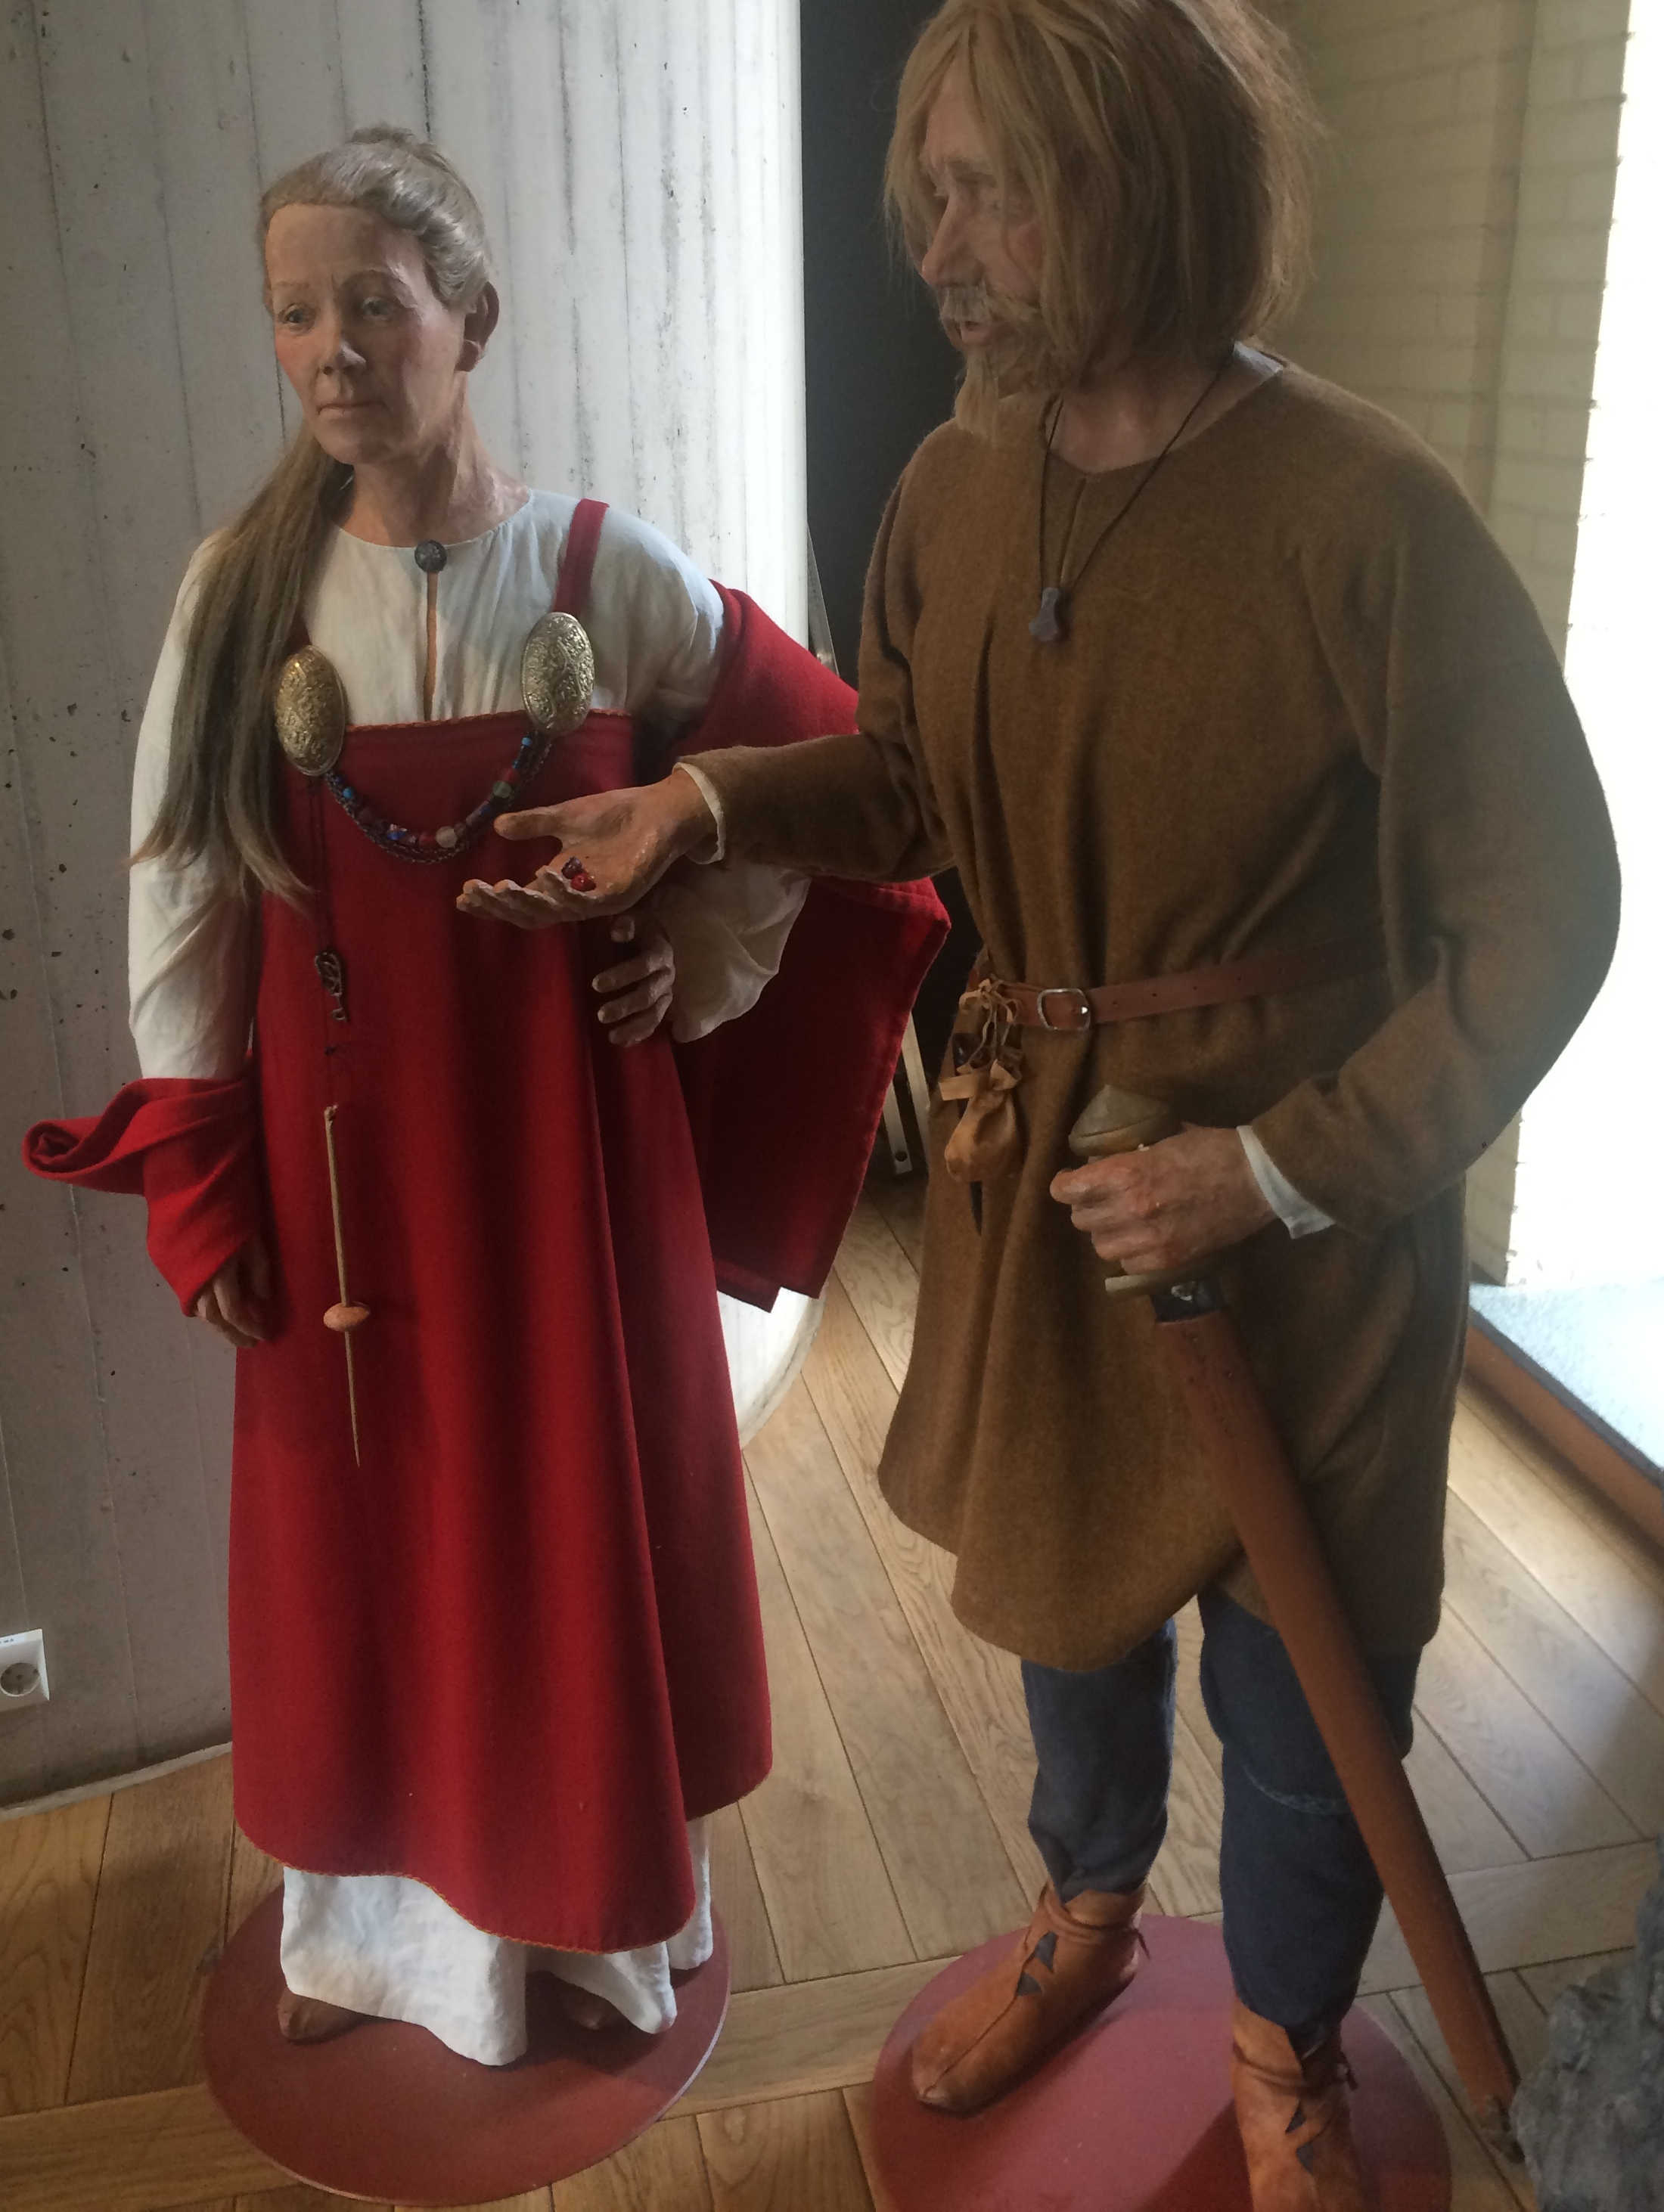 Image result for poor dress code in 1600s